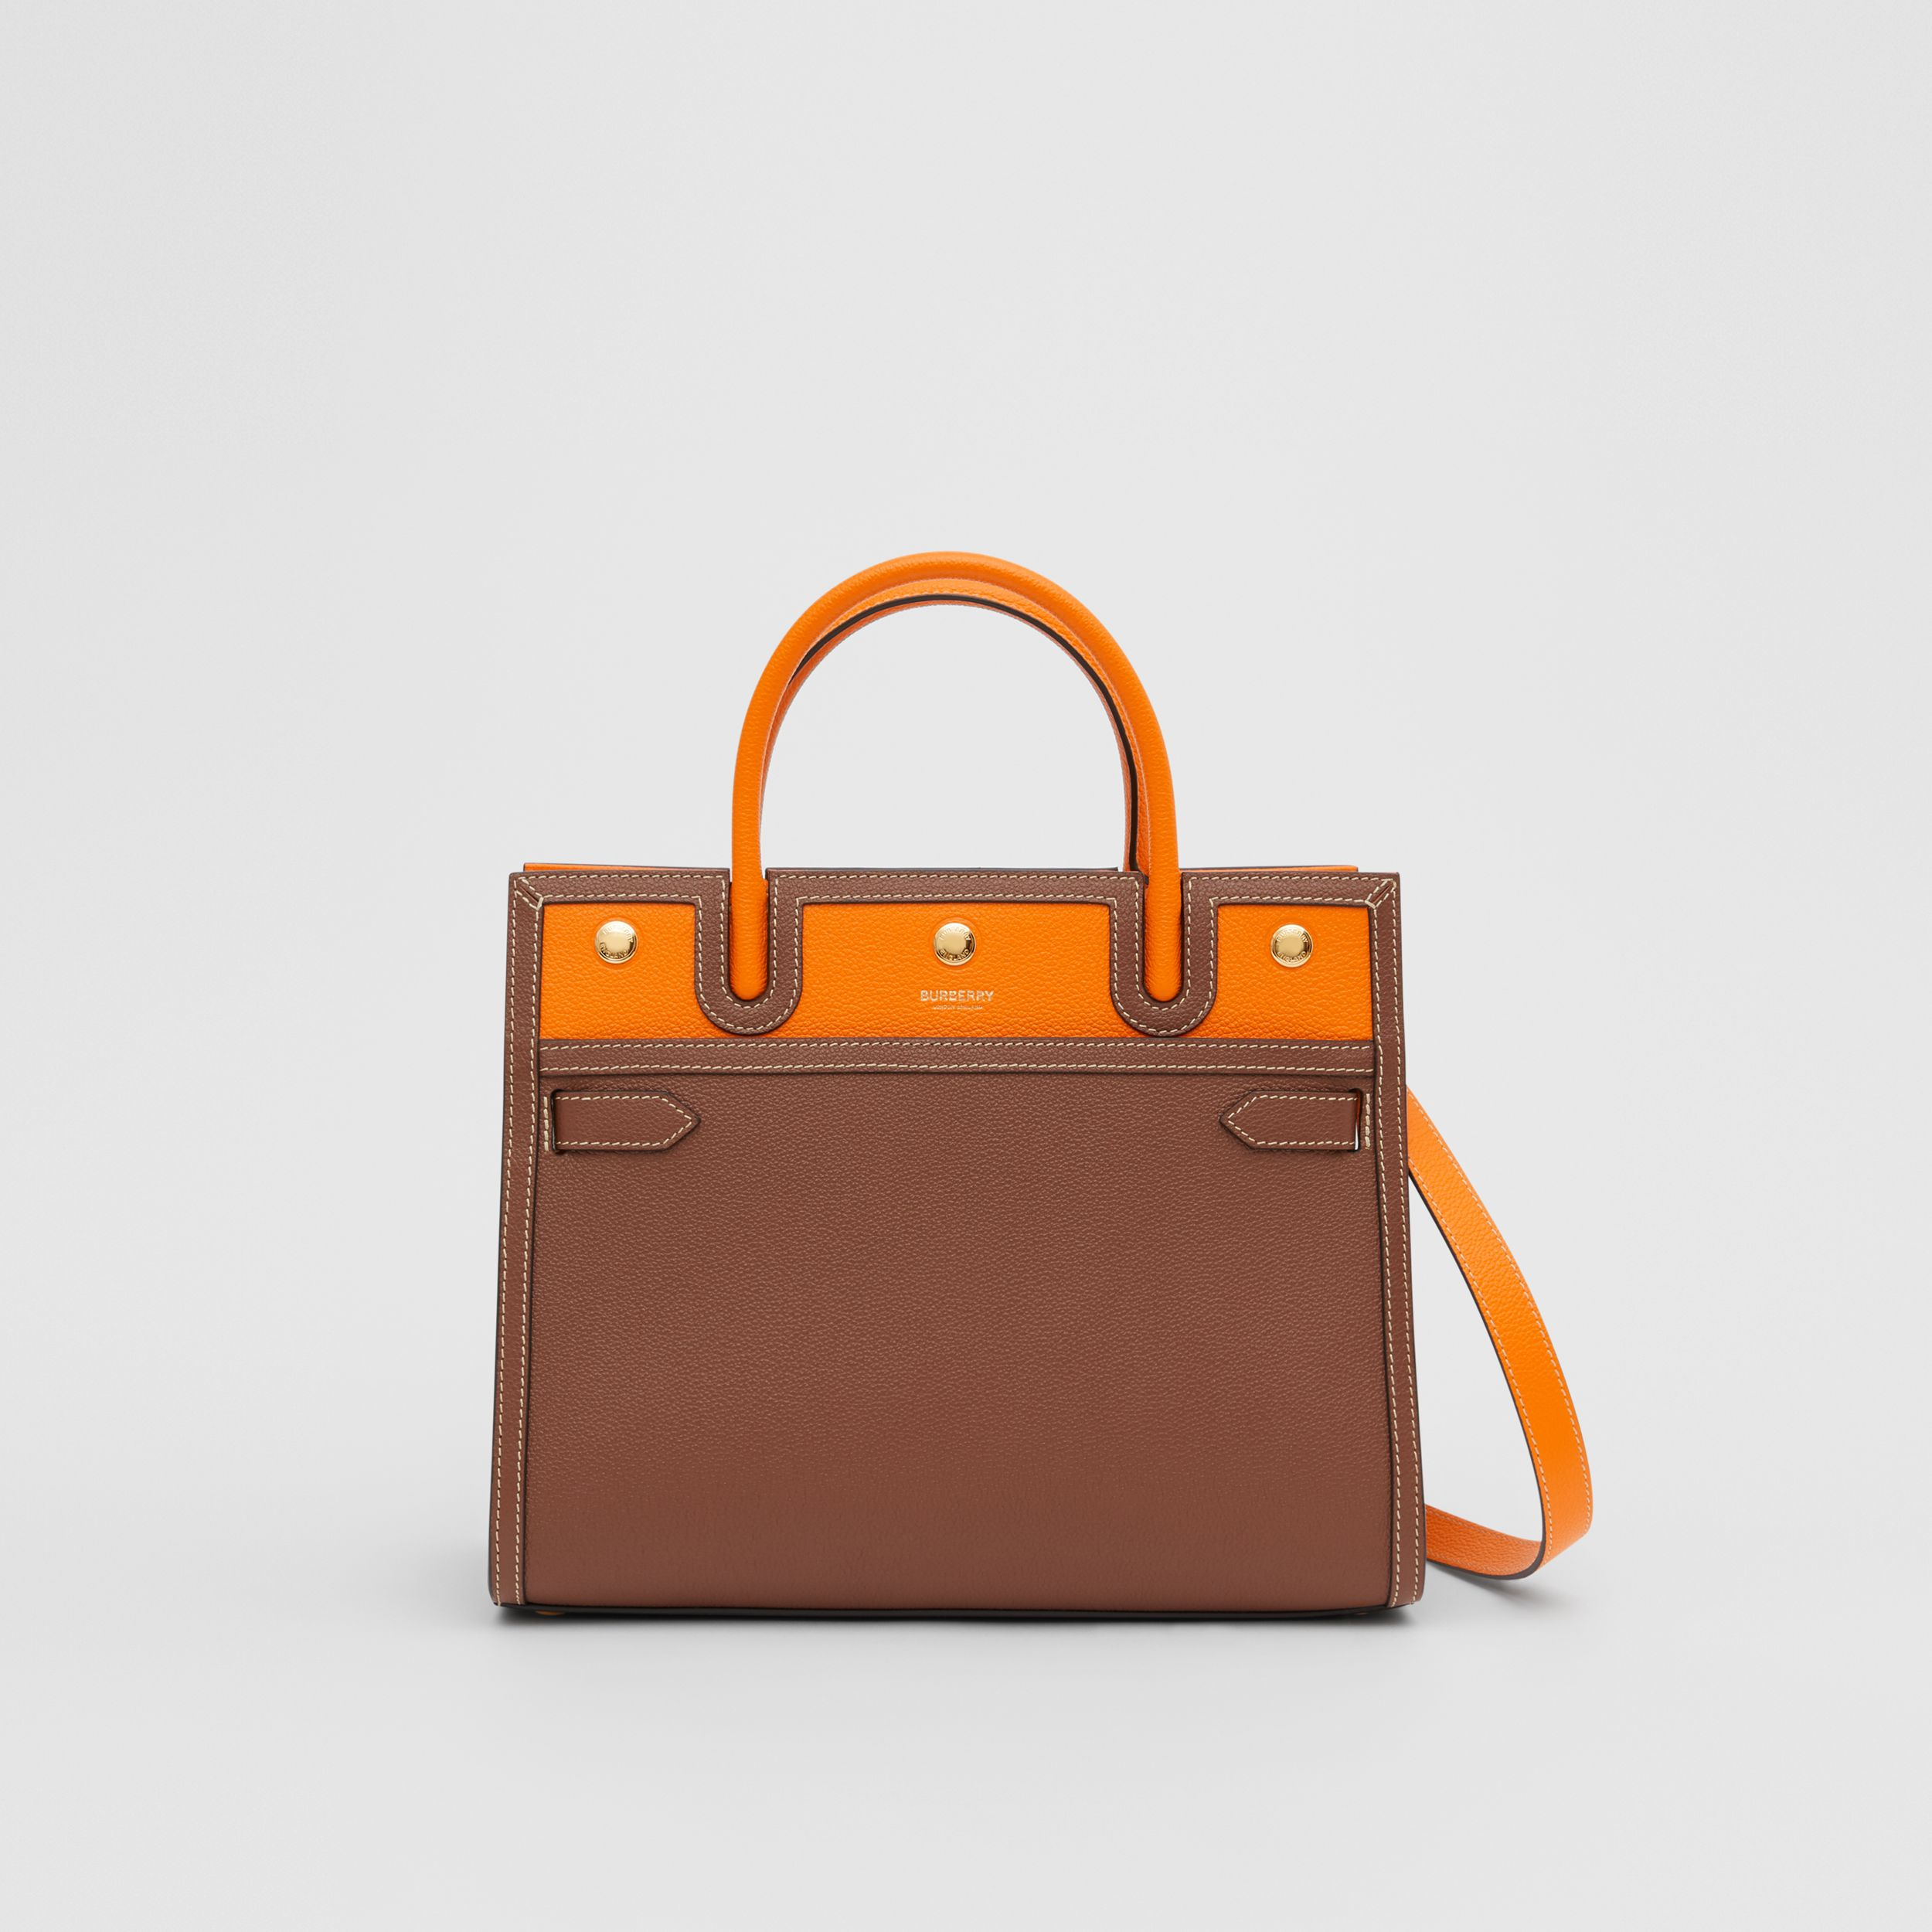 Small Leather Two-handle Title Bag in Tan/bright Orange - Women | Burberry Canada - 1